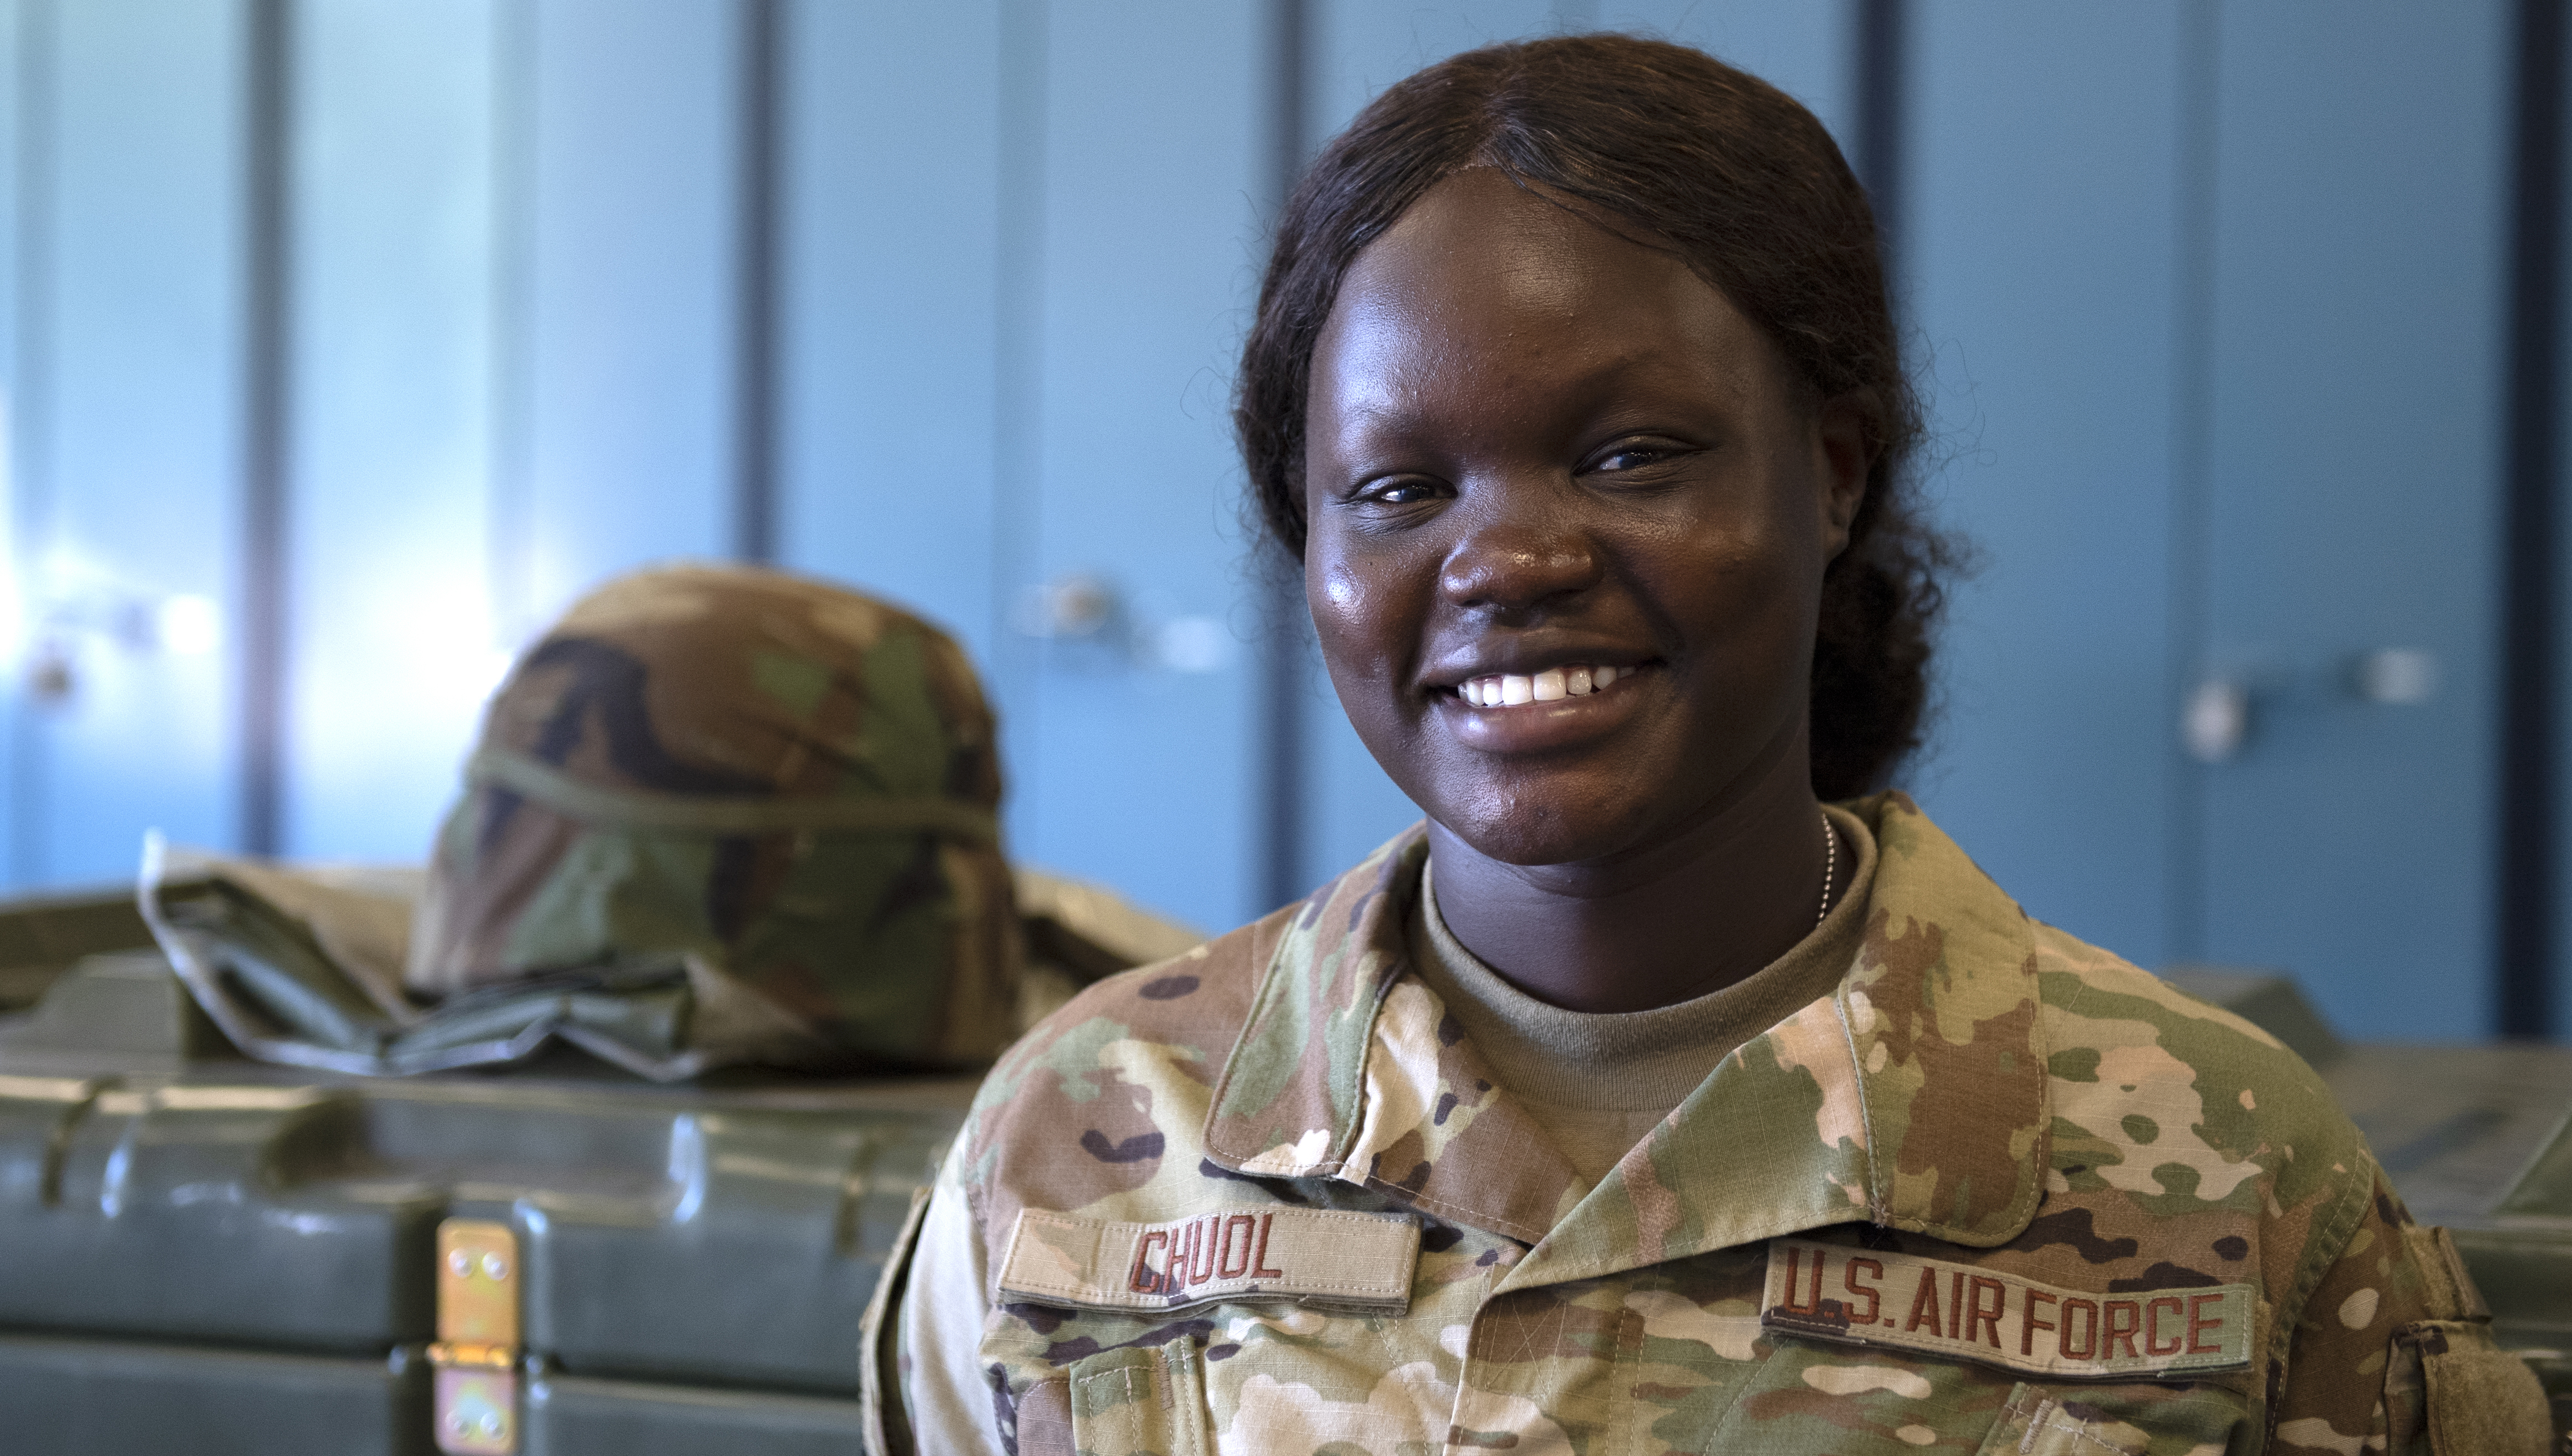 From refugee to Airman: a journey like no other